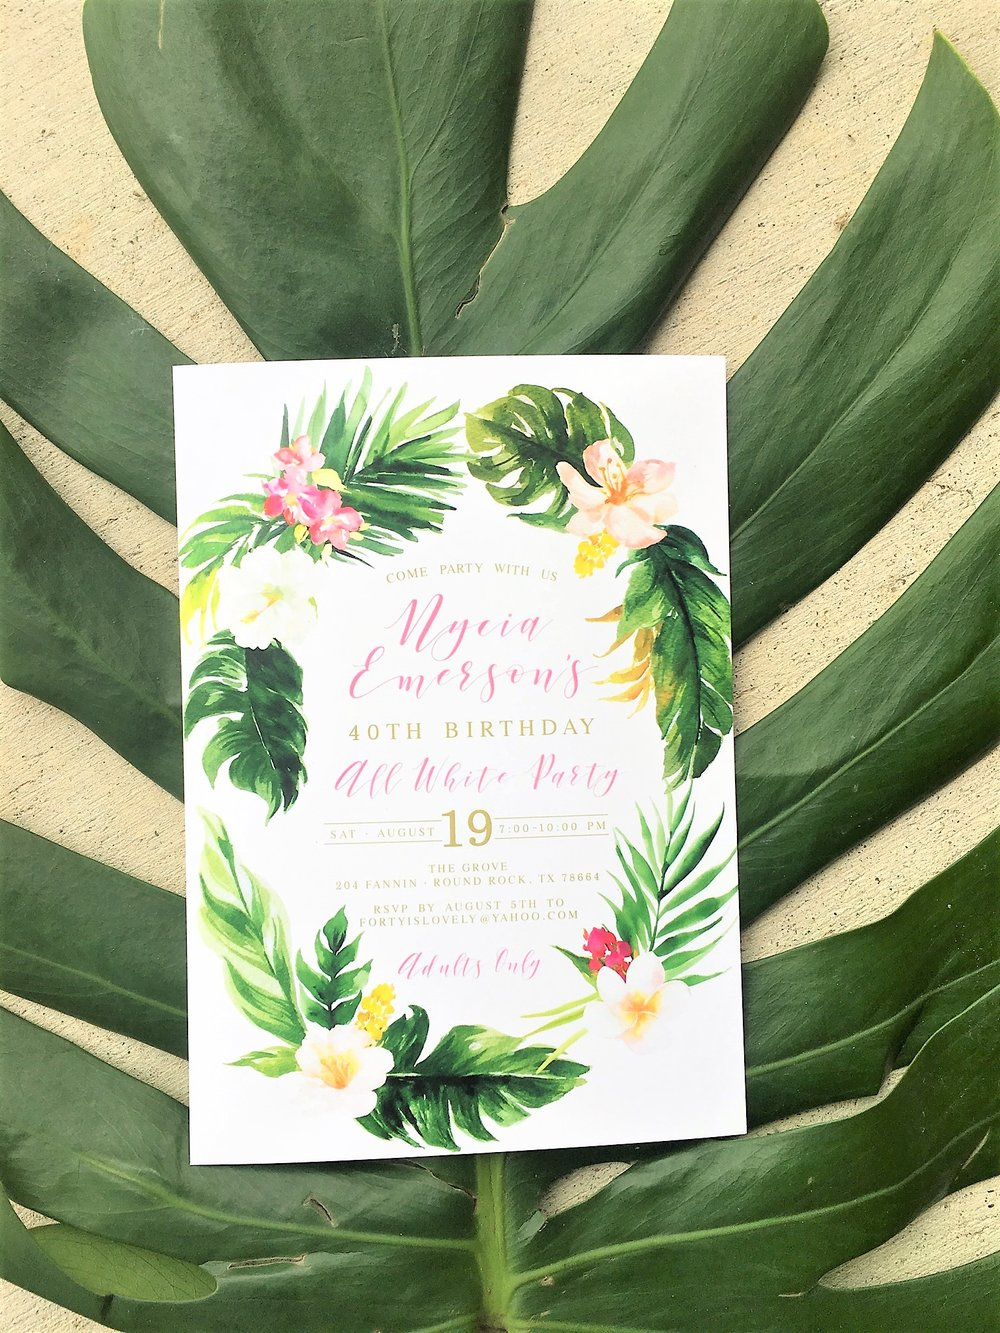 It started with the tropical invite that my friend found on etsy!! Introducing the all white affair in a colorful tropical way!